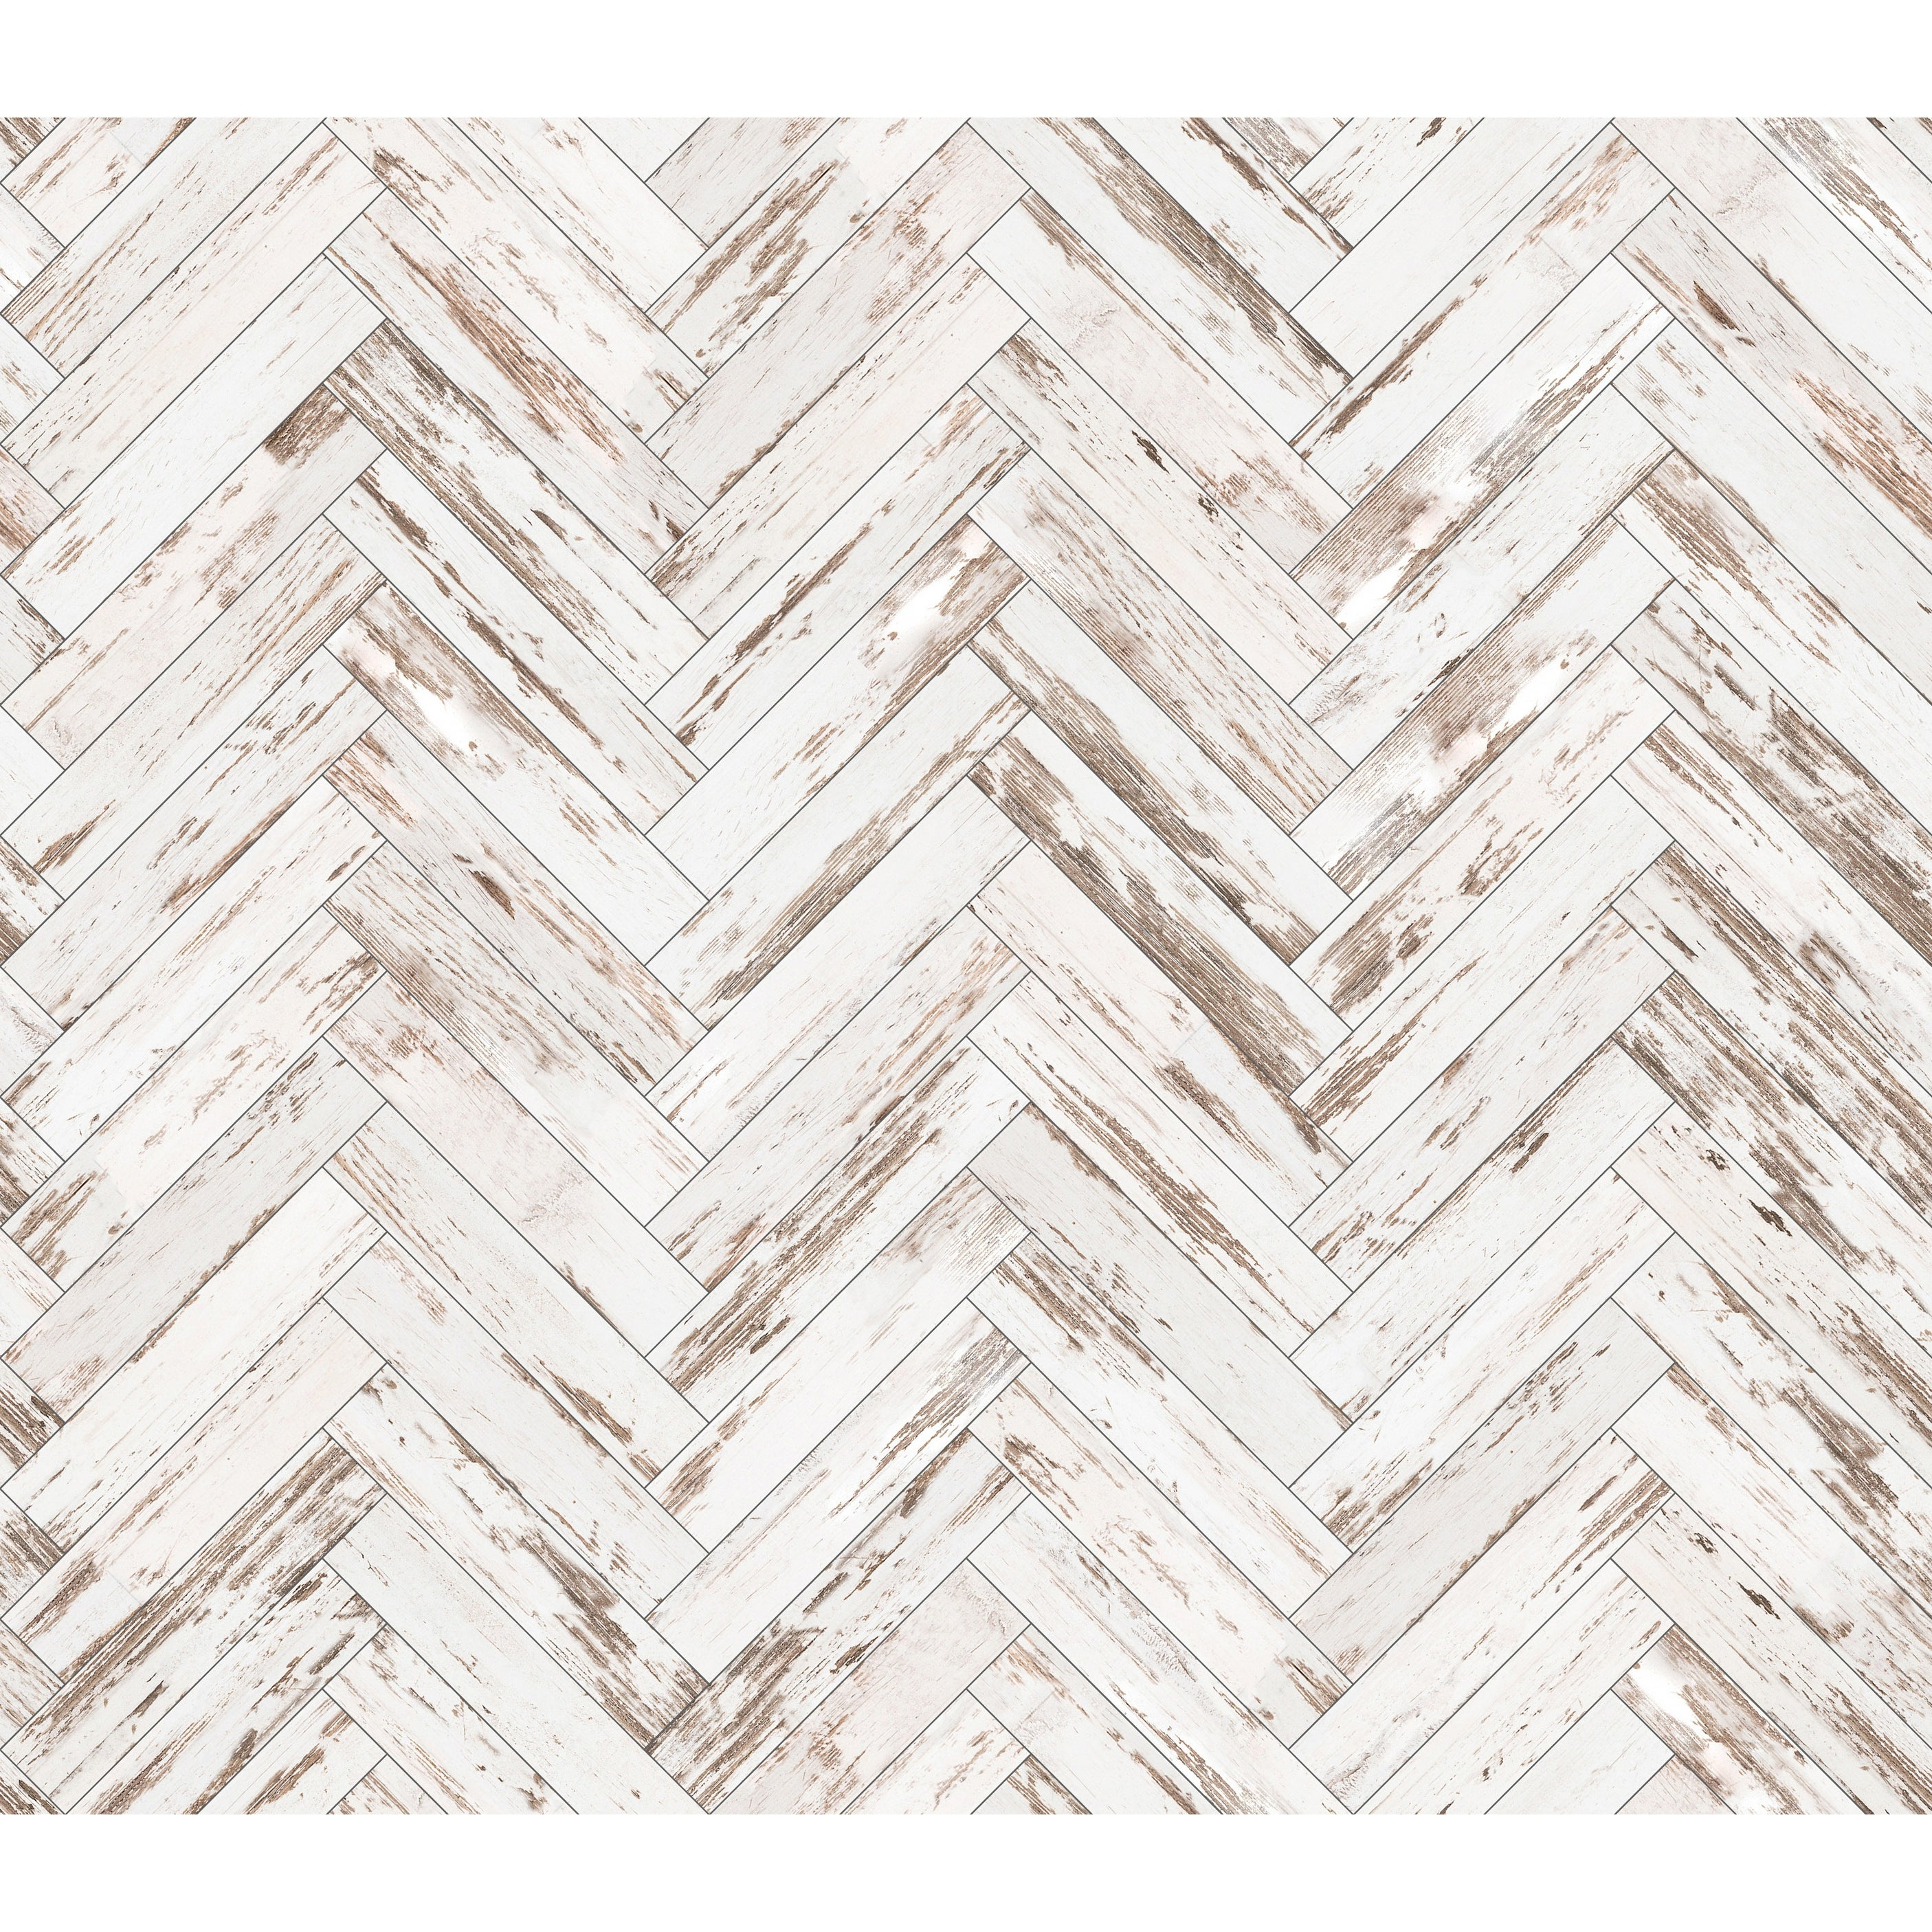 Shop Rustic Wood Parquet Removable Wallpaper 10 Ft H X 24 Inch W Overstock 31702842